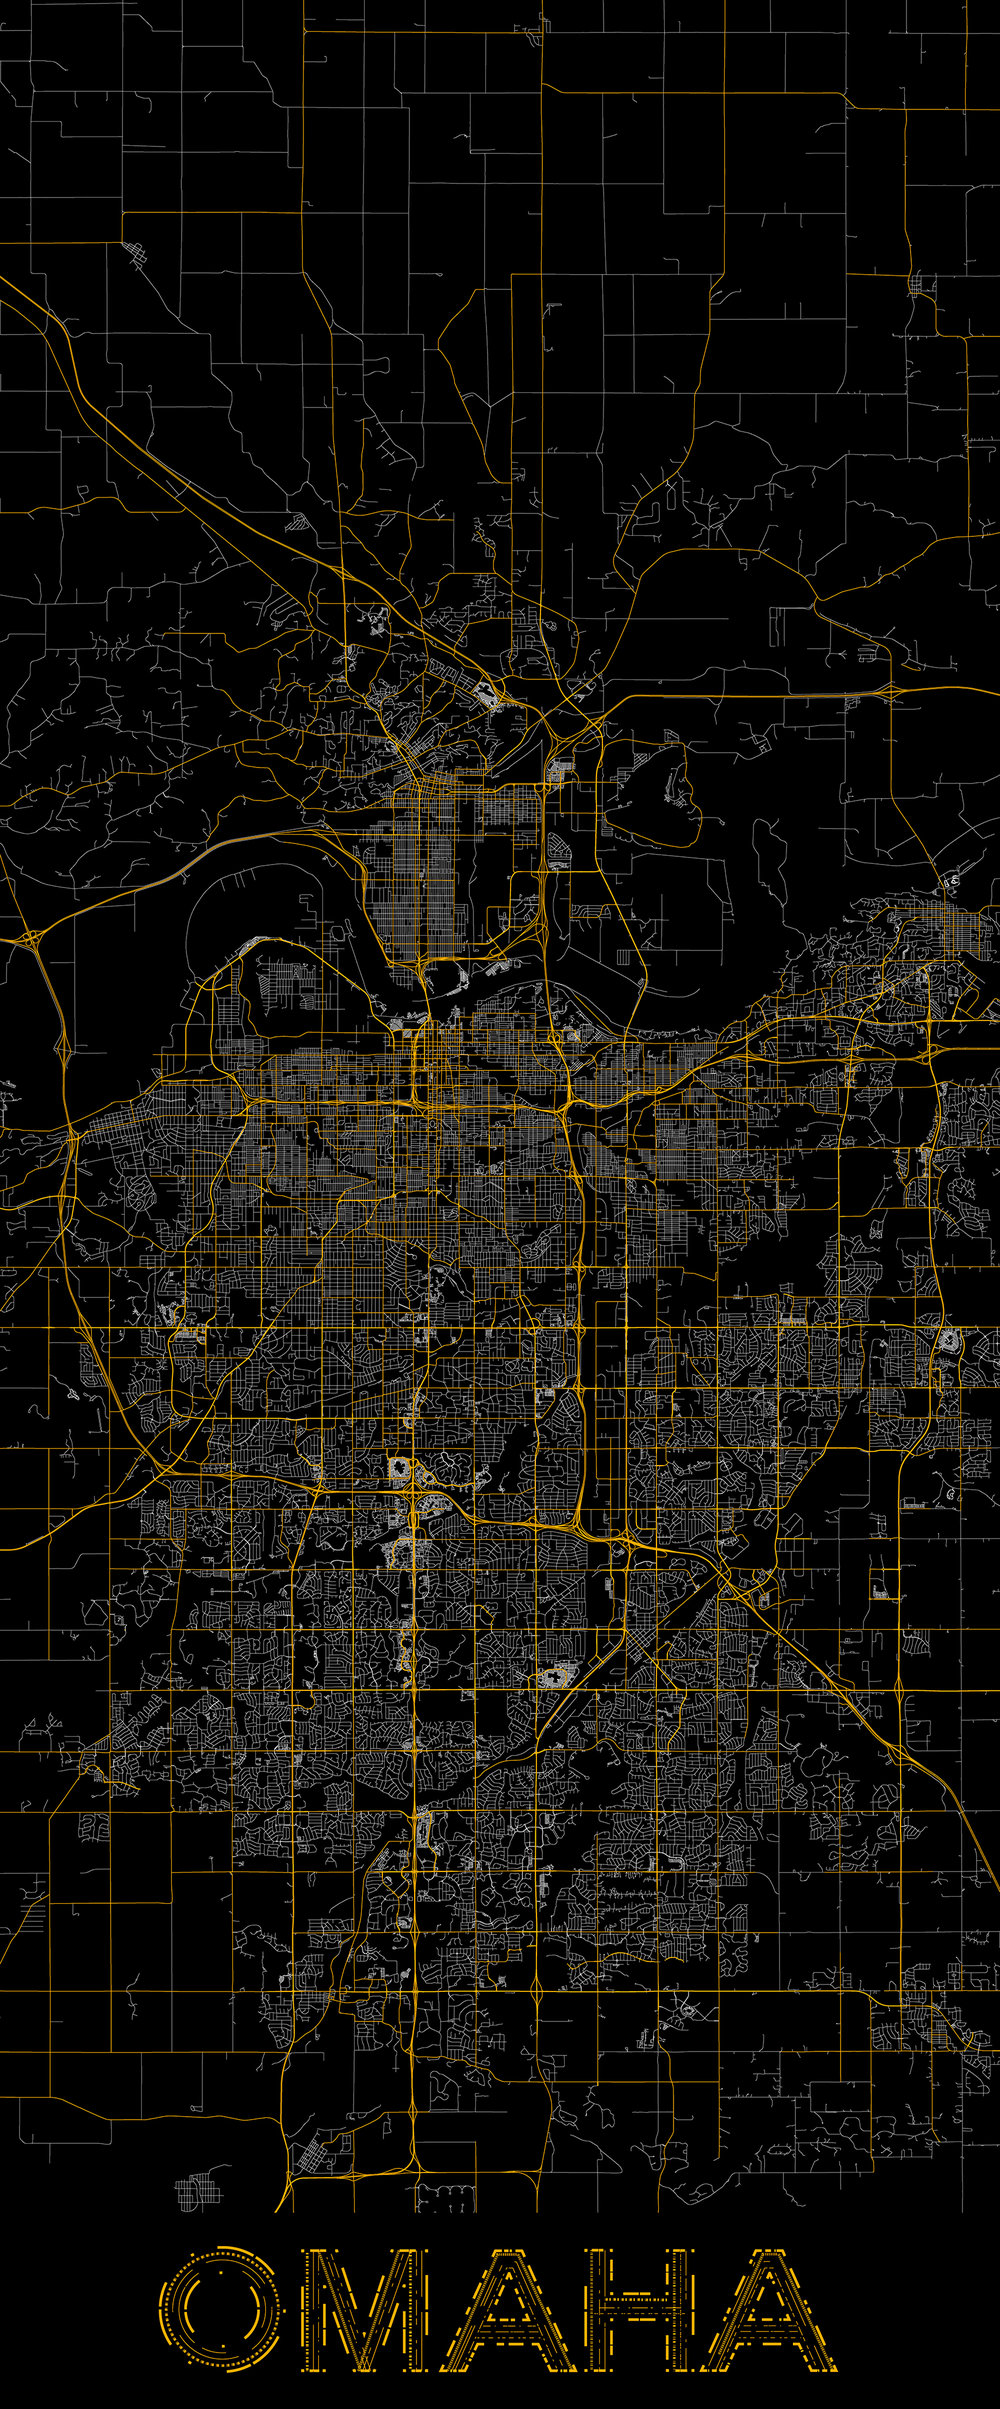 City map illustration of Omaha created using Maperitive, OpenStreetMap and Adobe Illustrator.